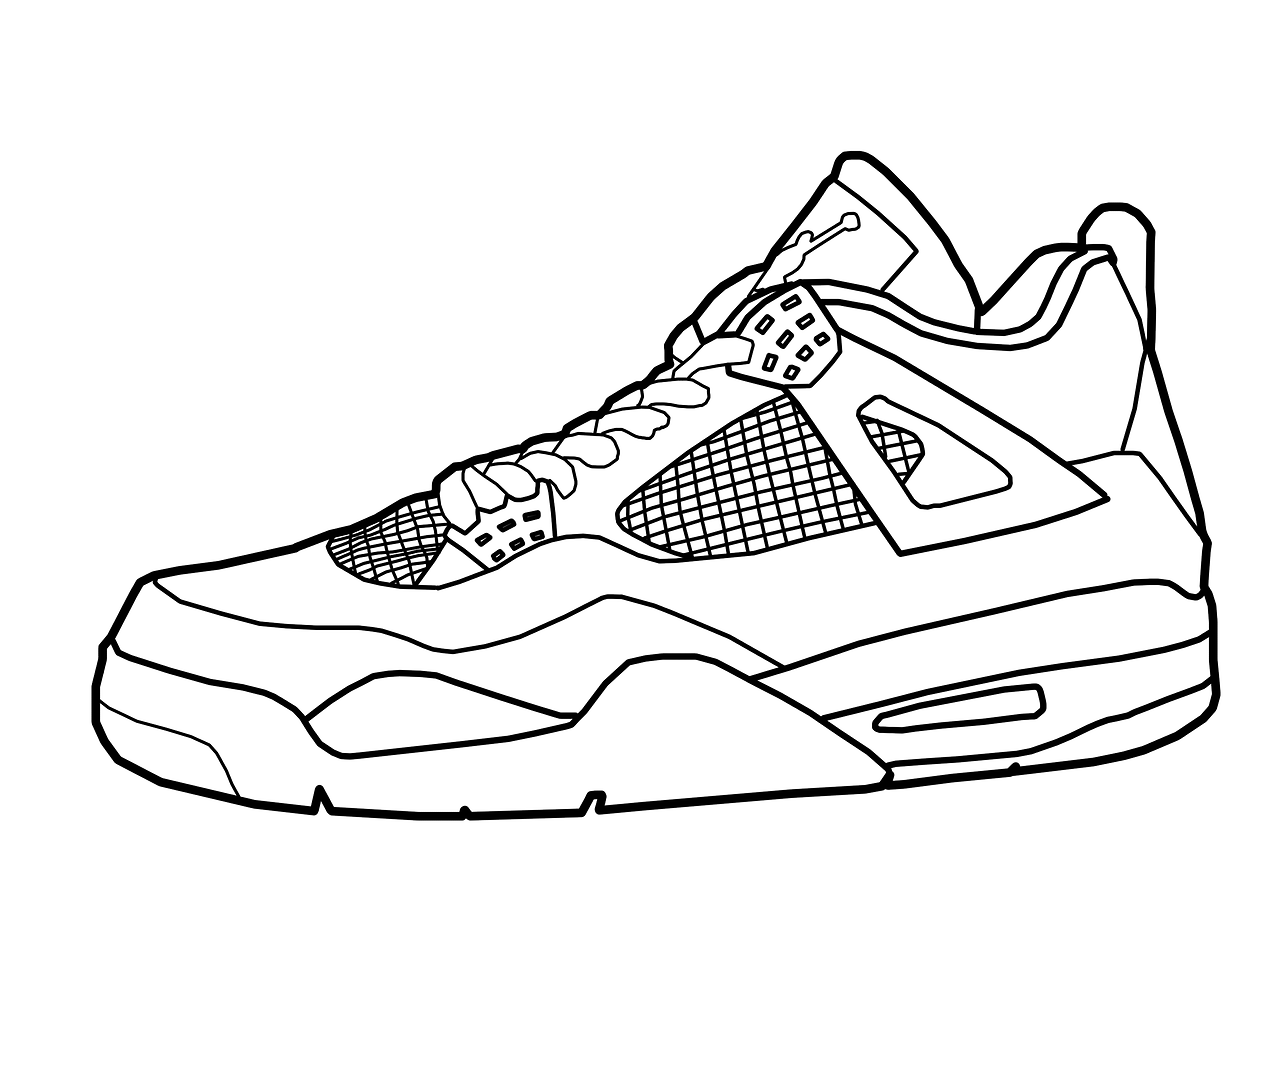 Tennis Shoe Coloring Page At Getdrawings Com Free For Personal Use